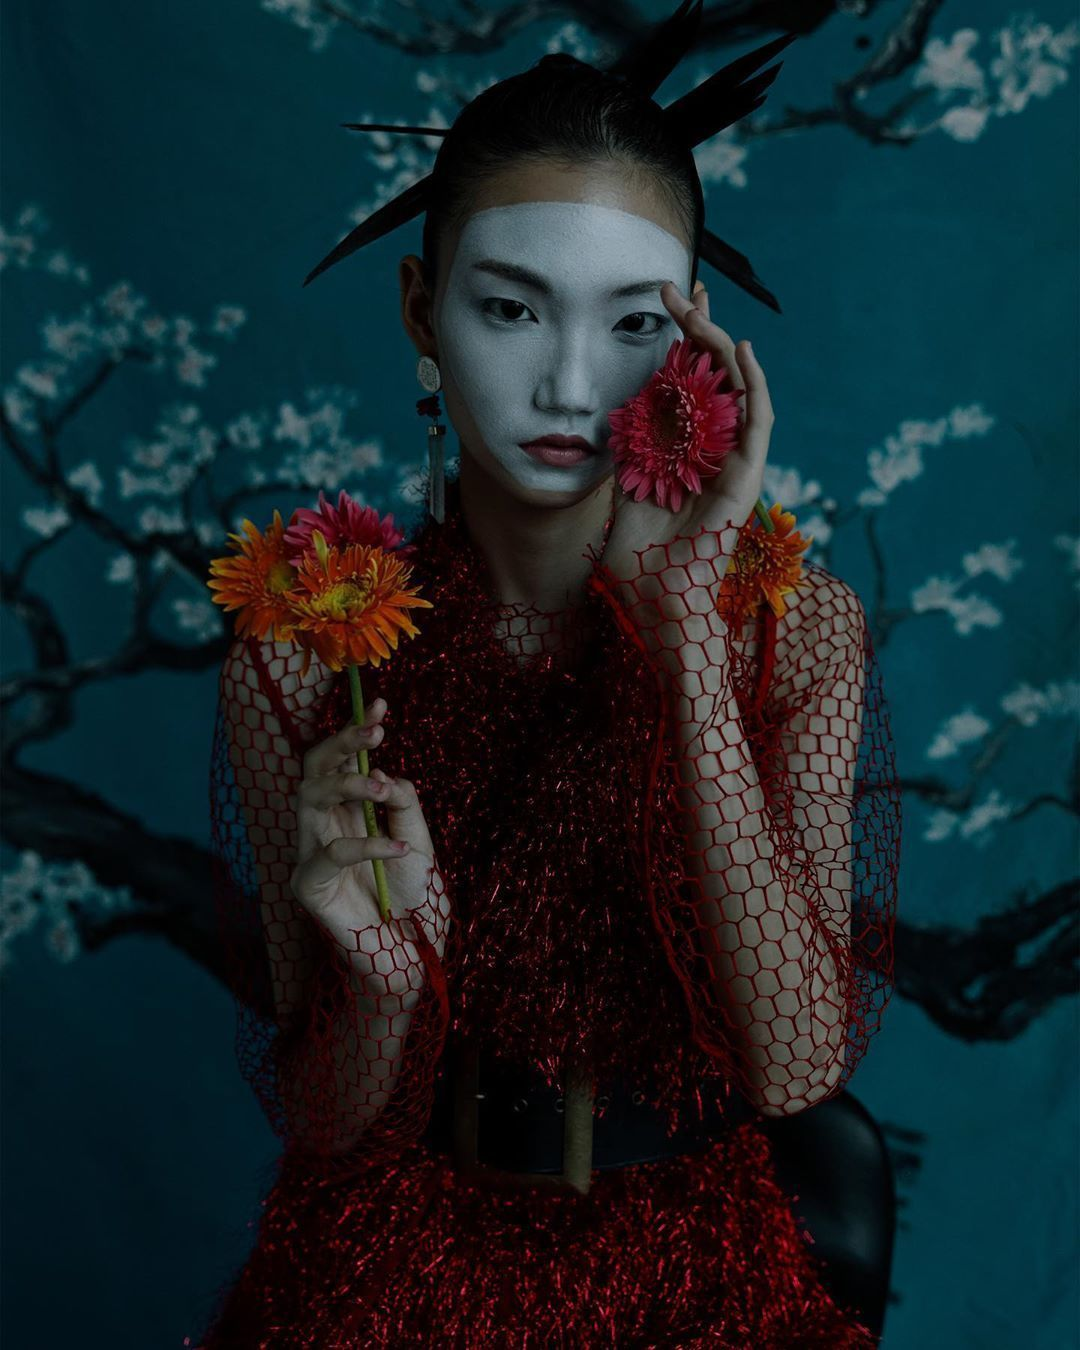 """Schön! Magazine on Instagram: """"A Floral Touch  schonmagazine.com/she-comes-from-asia/  photography. @9eyes_ph fashion. @xuxustyle model. #TongtongYang @longtengmodels…"""" #schonmagazine Schön! Magazine on Instagram: """"A Floral Touch  schonmagazine.com/she-comes-from-asia/  photography. @9eyes_ph fashion. @xuxustyle model. #TongtongYang @longtengmodels…"""" #schonmagazine Schön! Magazine on Instagram: """"A Floral Touch  schonmagazine.com/she-comes-from-asia/  photography. @9eyes_ph fashi #schonmagazine"""